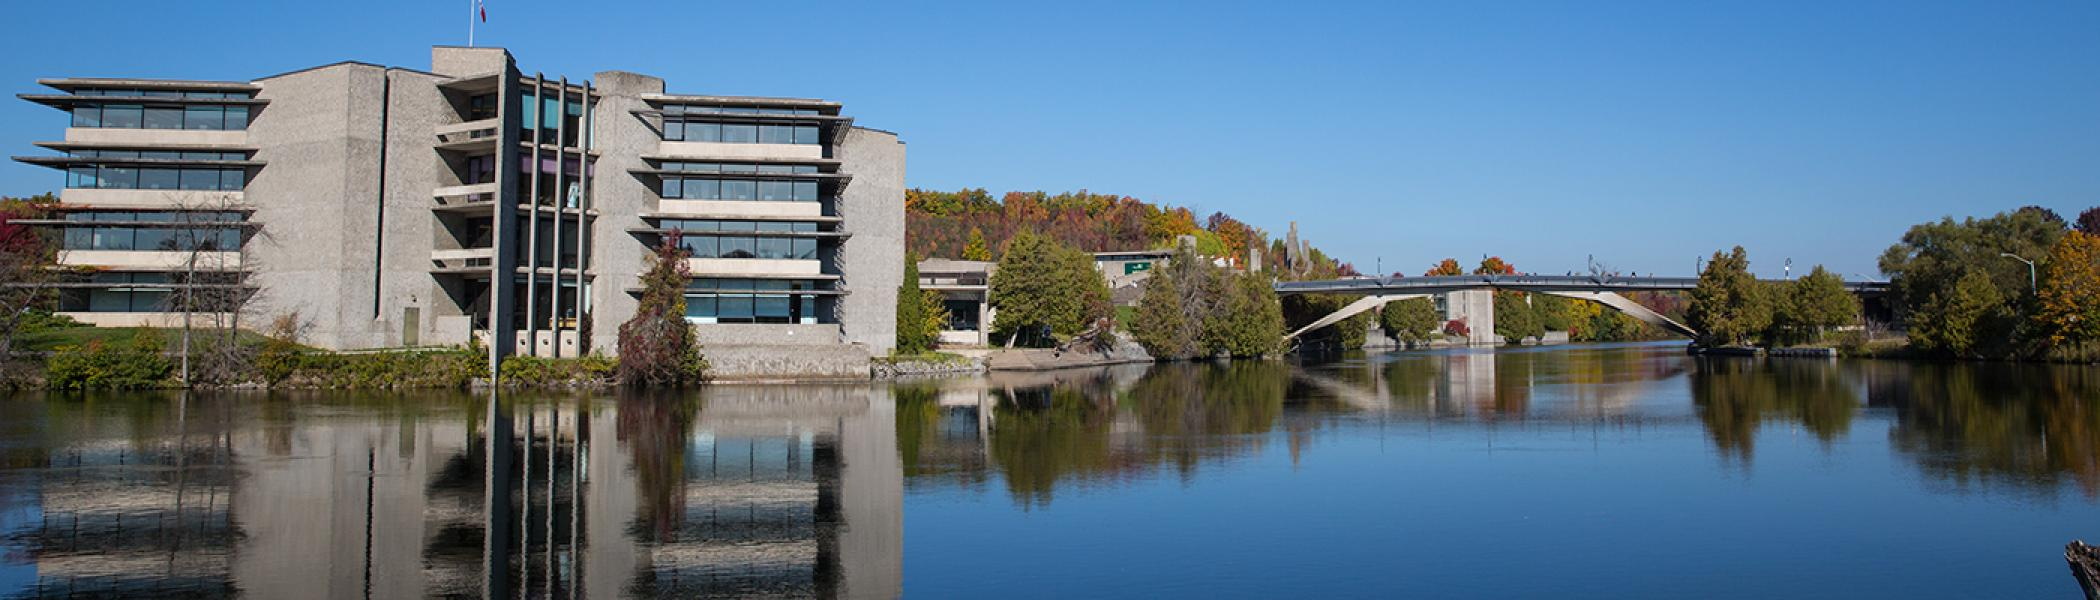 Exterior view of the Bata library and the Faryon bridge in the fall sun from across the otonabee river, looking North